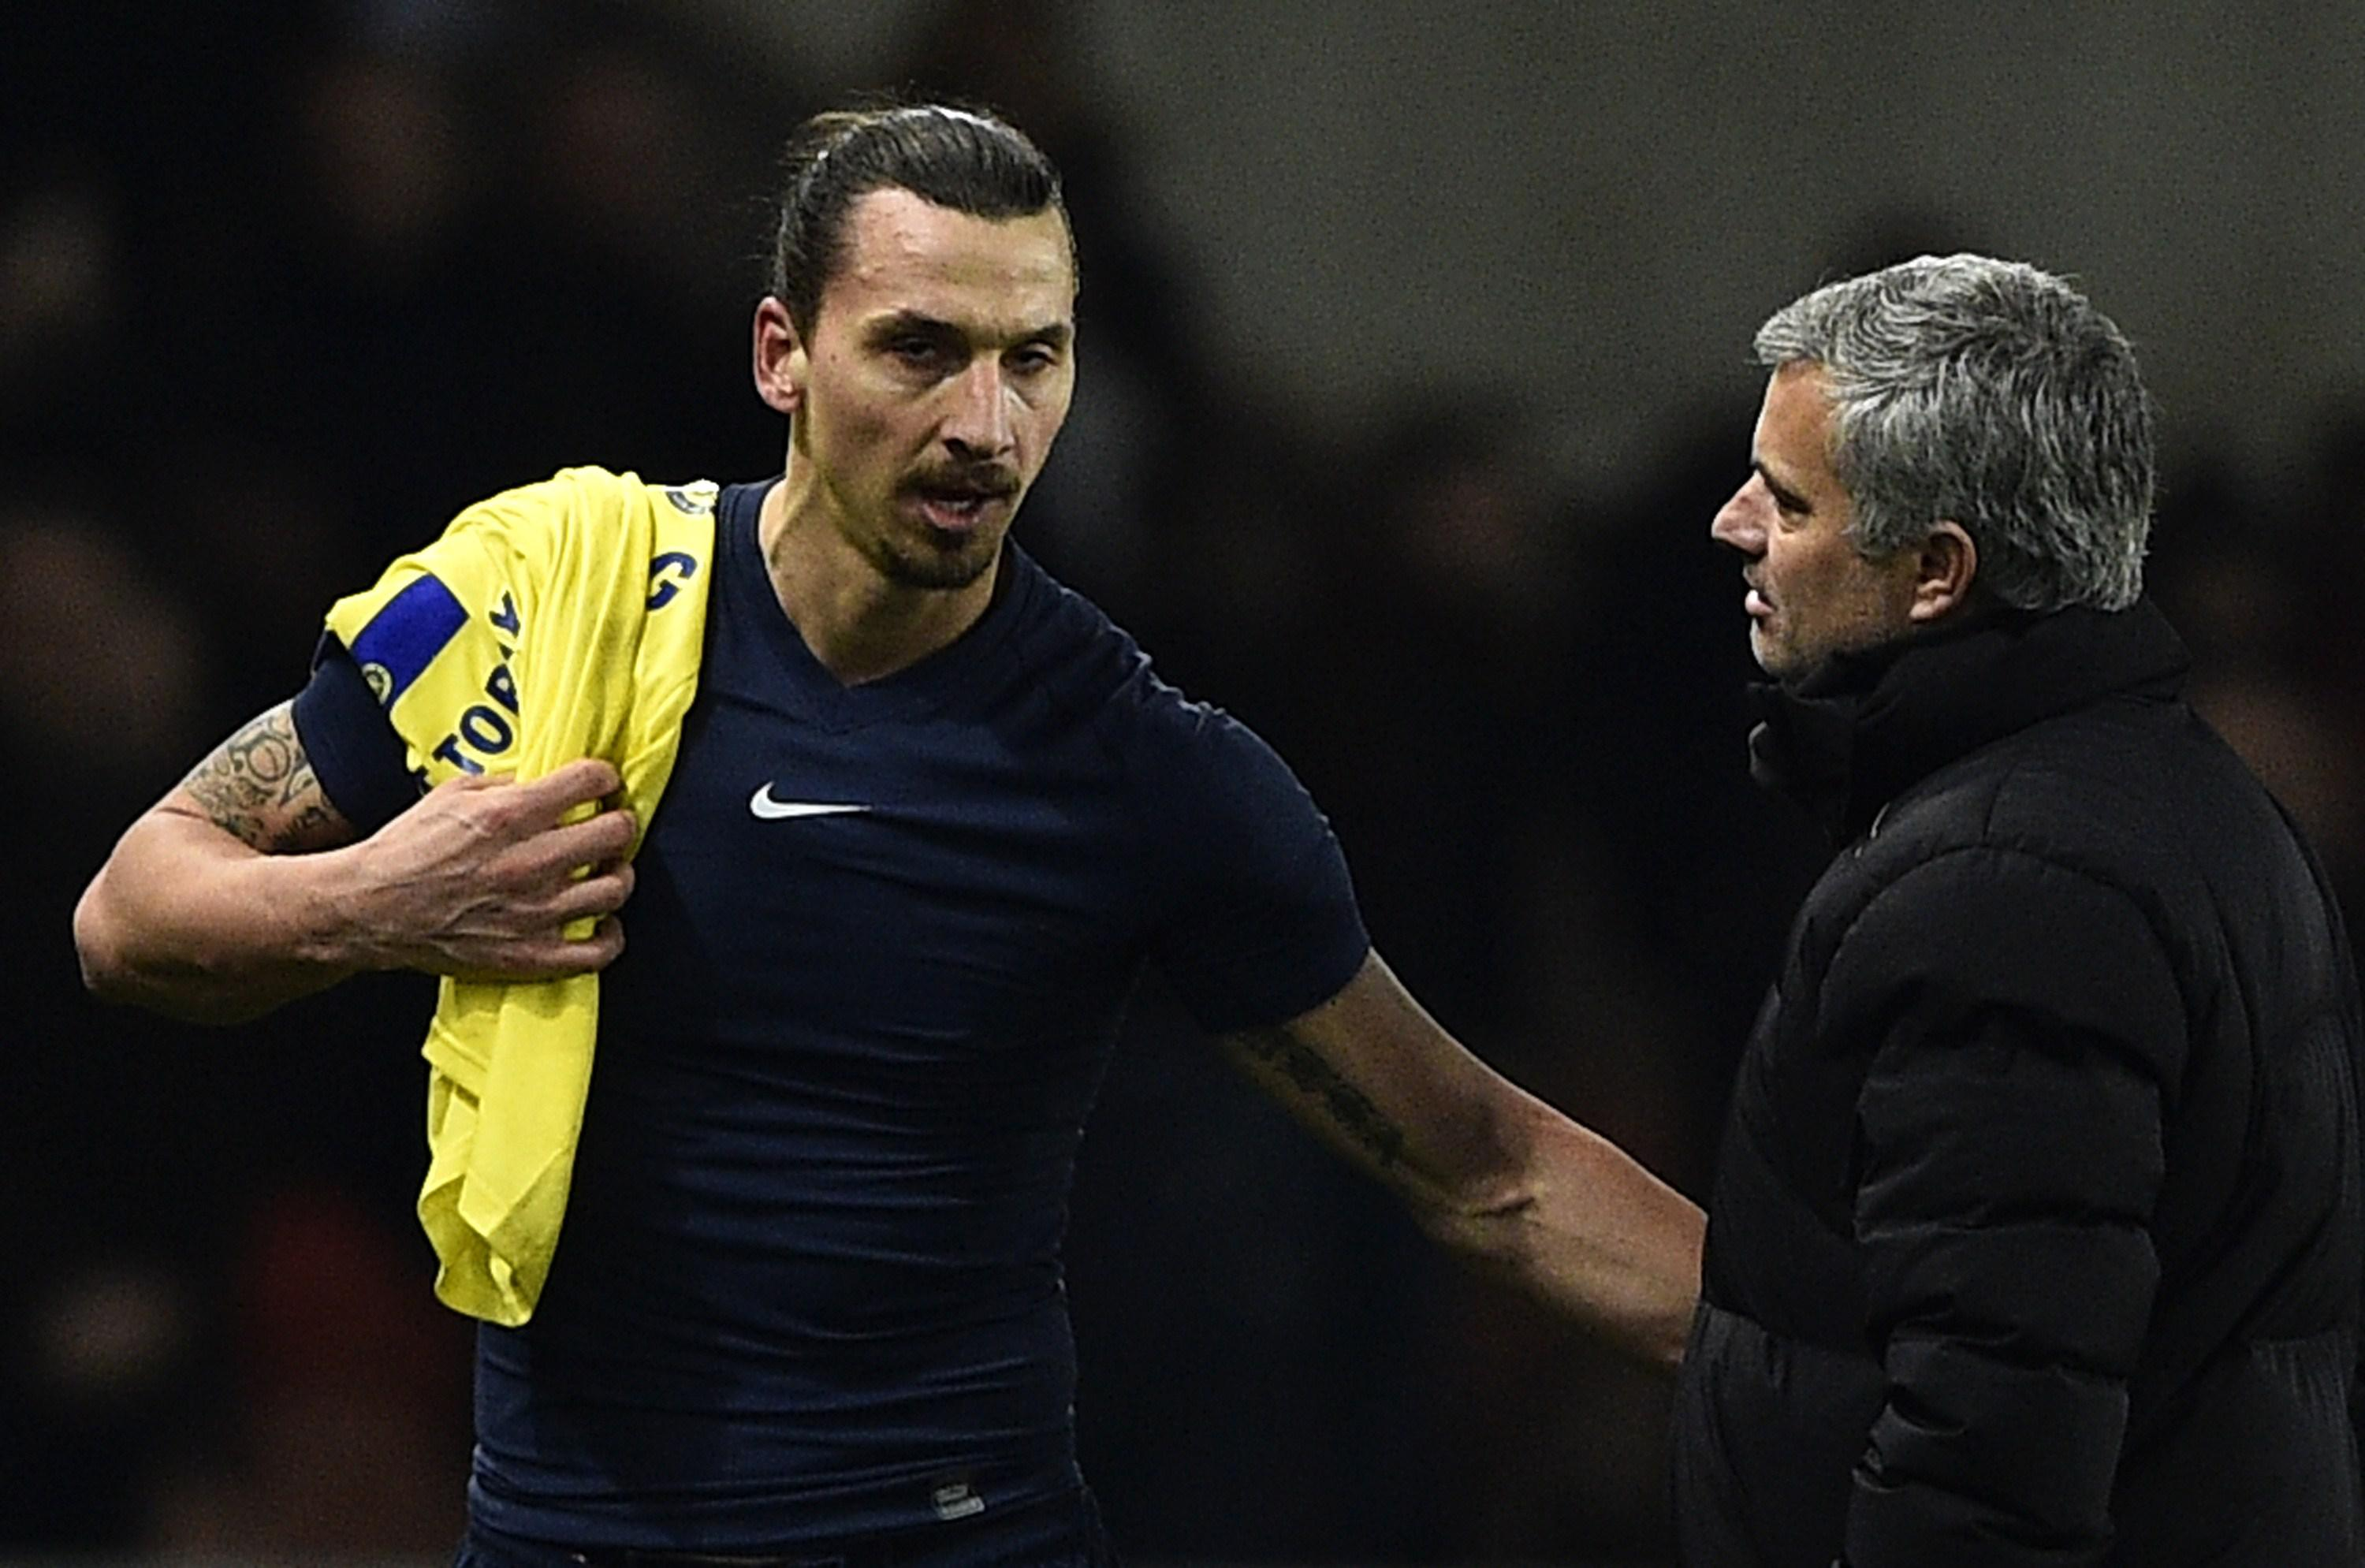 Zlatan and Mourinho in 2015, when PSG faced Chelsea